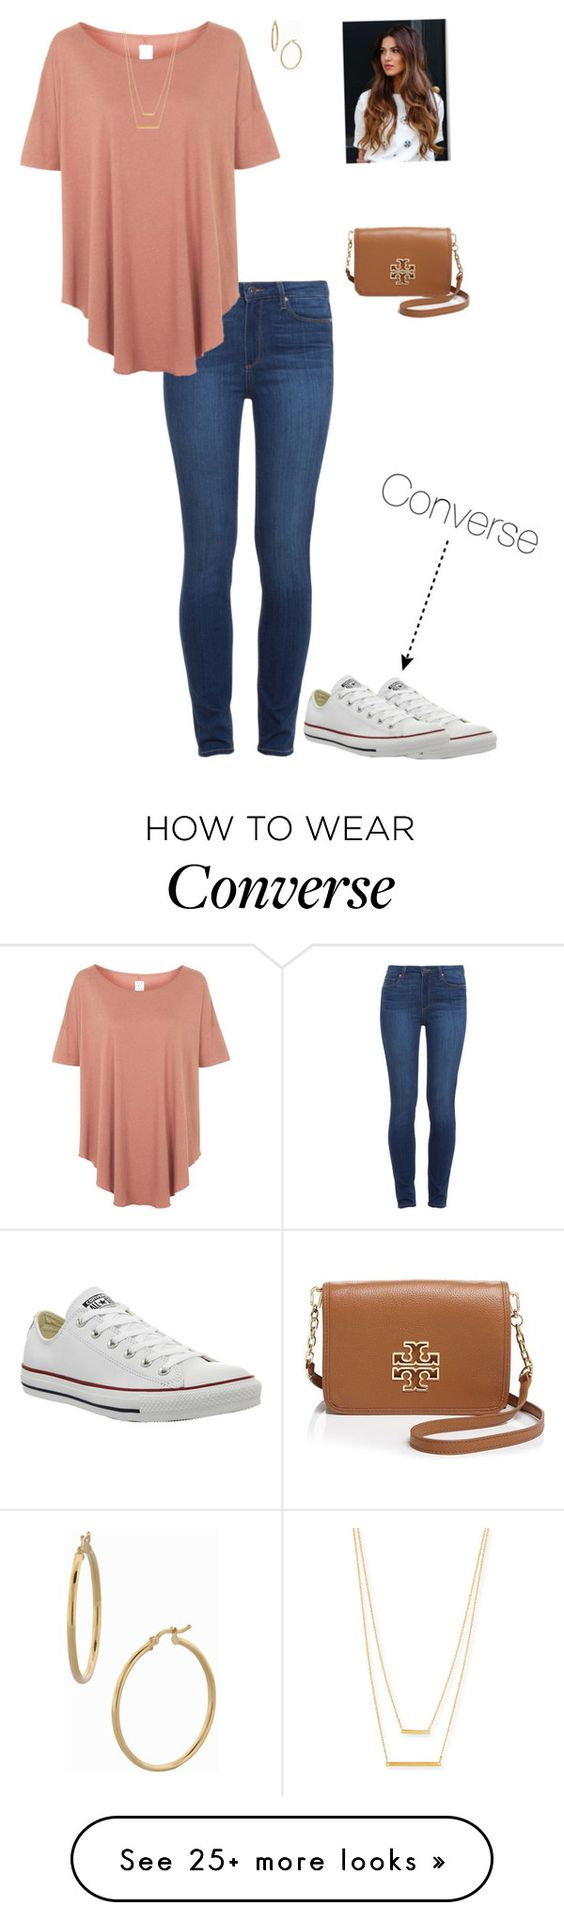 """""""C Is For Converse"""" by preppyygirll on Polyvore featuring Converse, Paige Denim, Topshop, Jennifer Zeuner, Tory Burch and Bony Levy                                                                                                                                                      More"""